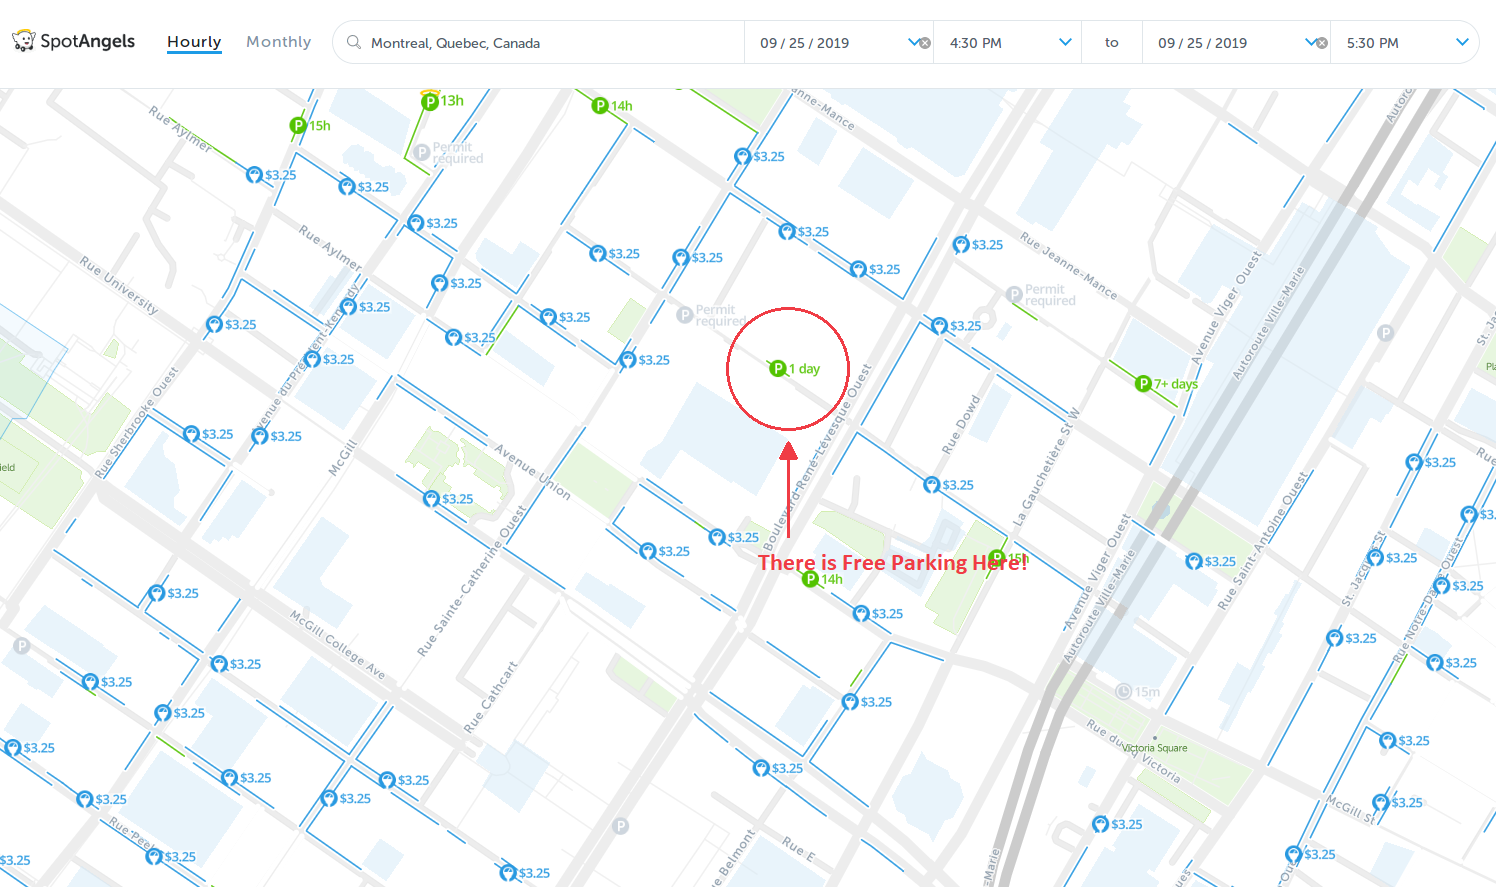 map of free parking in Montreal - SpotAngels